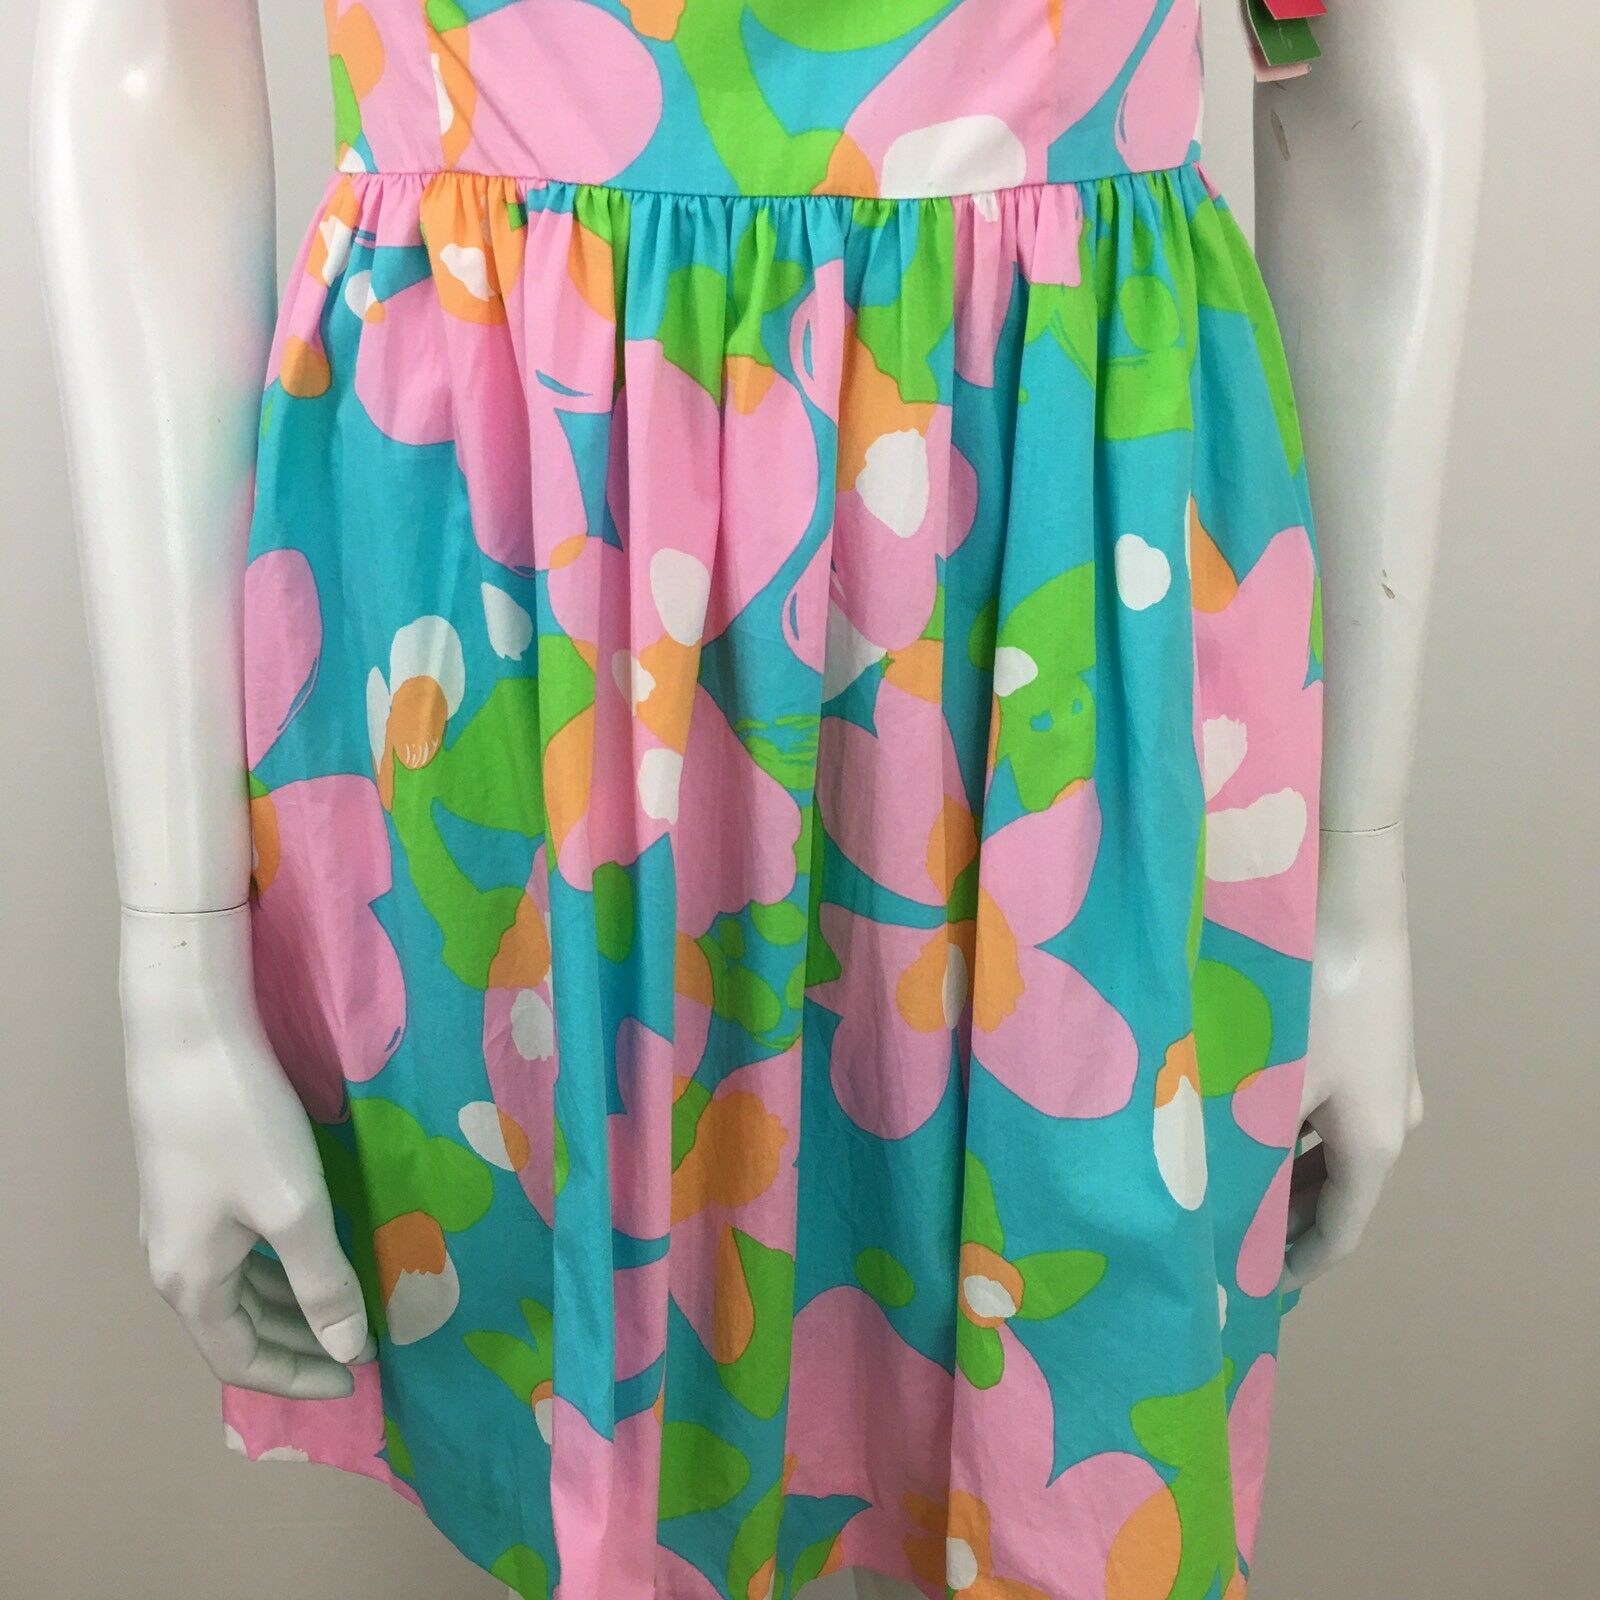 Lilly Pulitzer Richelle Shorely Blue Mojo Strapless Tie Back Dress 2